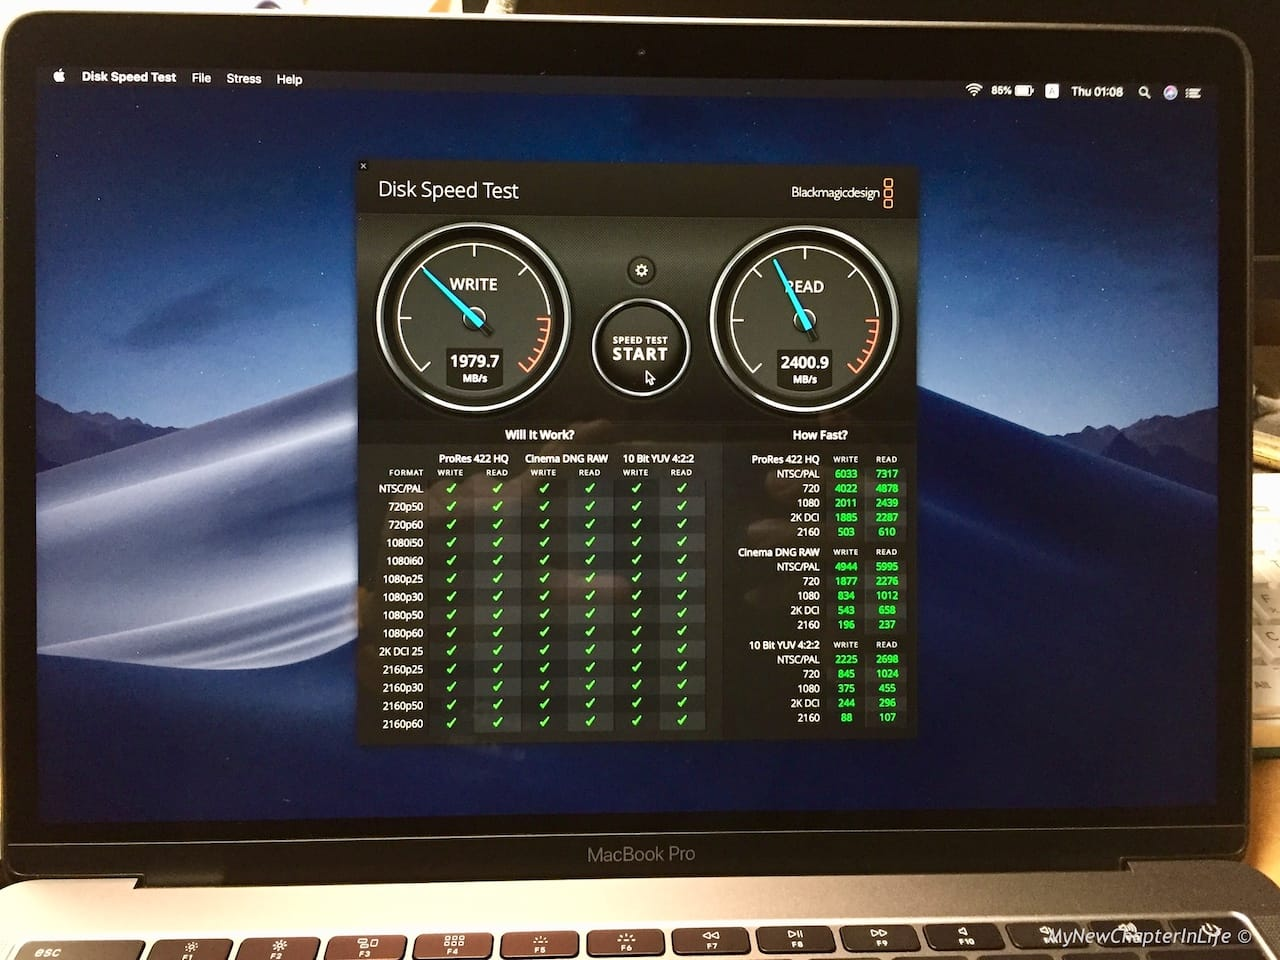 SSD I/O Performance by Blackmagic Disk Speed Test